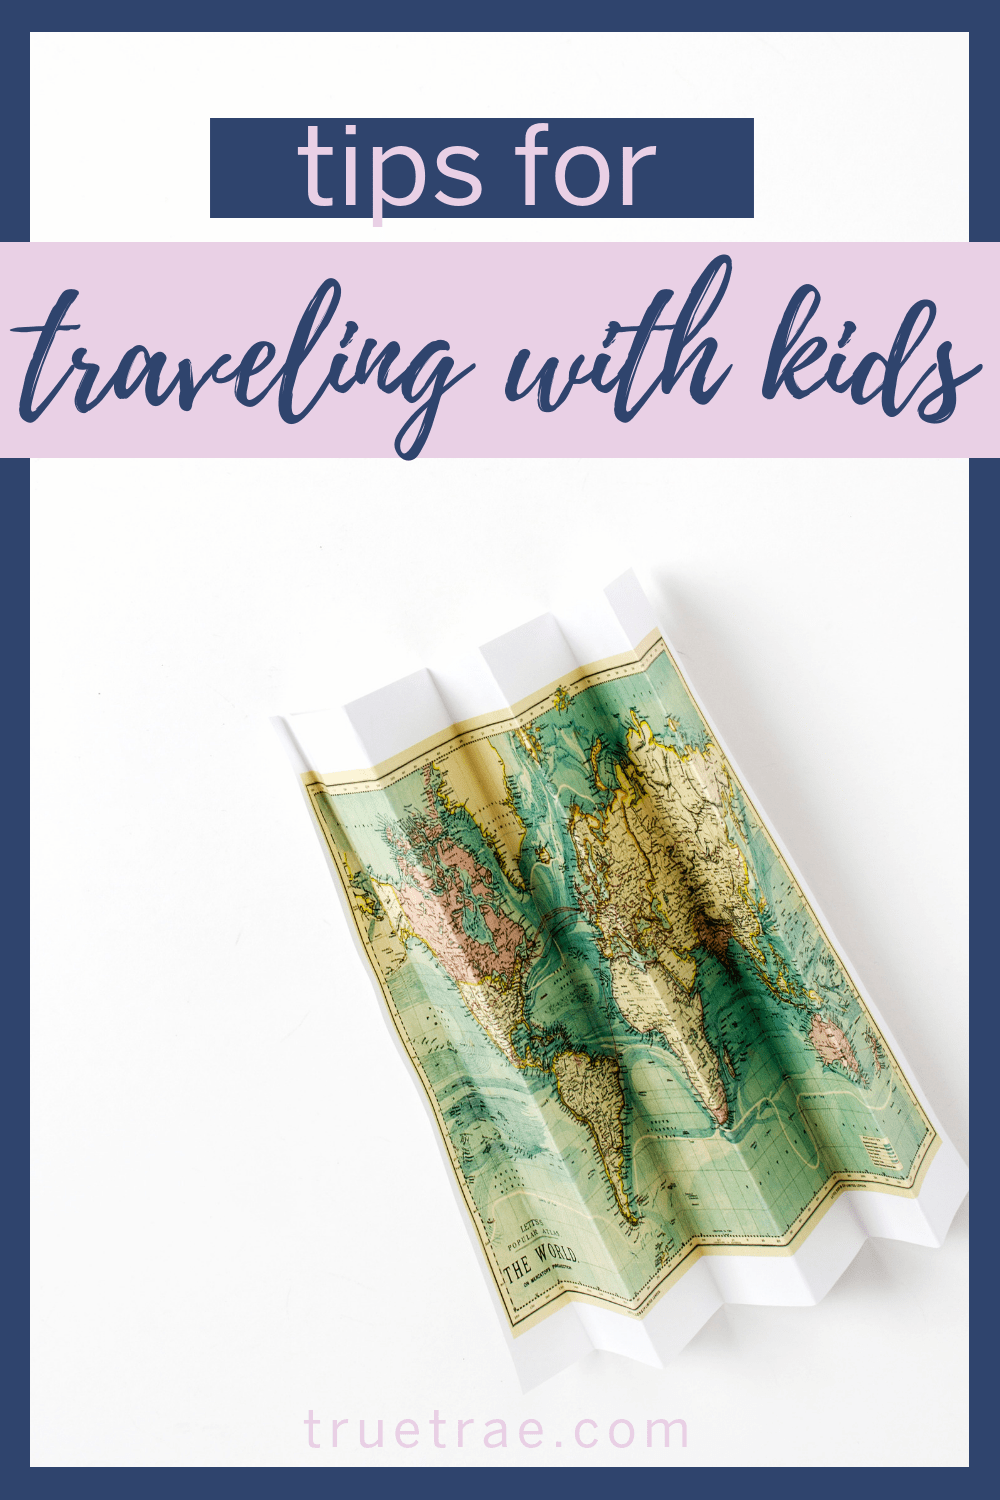 These are a few of my favorite tried-and-true tips for traveling with kids to help make trips and vacations with young children a more pleasant experience for everyone on your family vacation! #traveltips #parentingtips #travelingwithkids #kidtravel